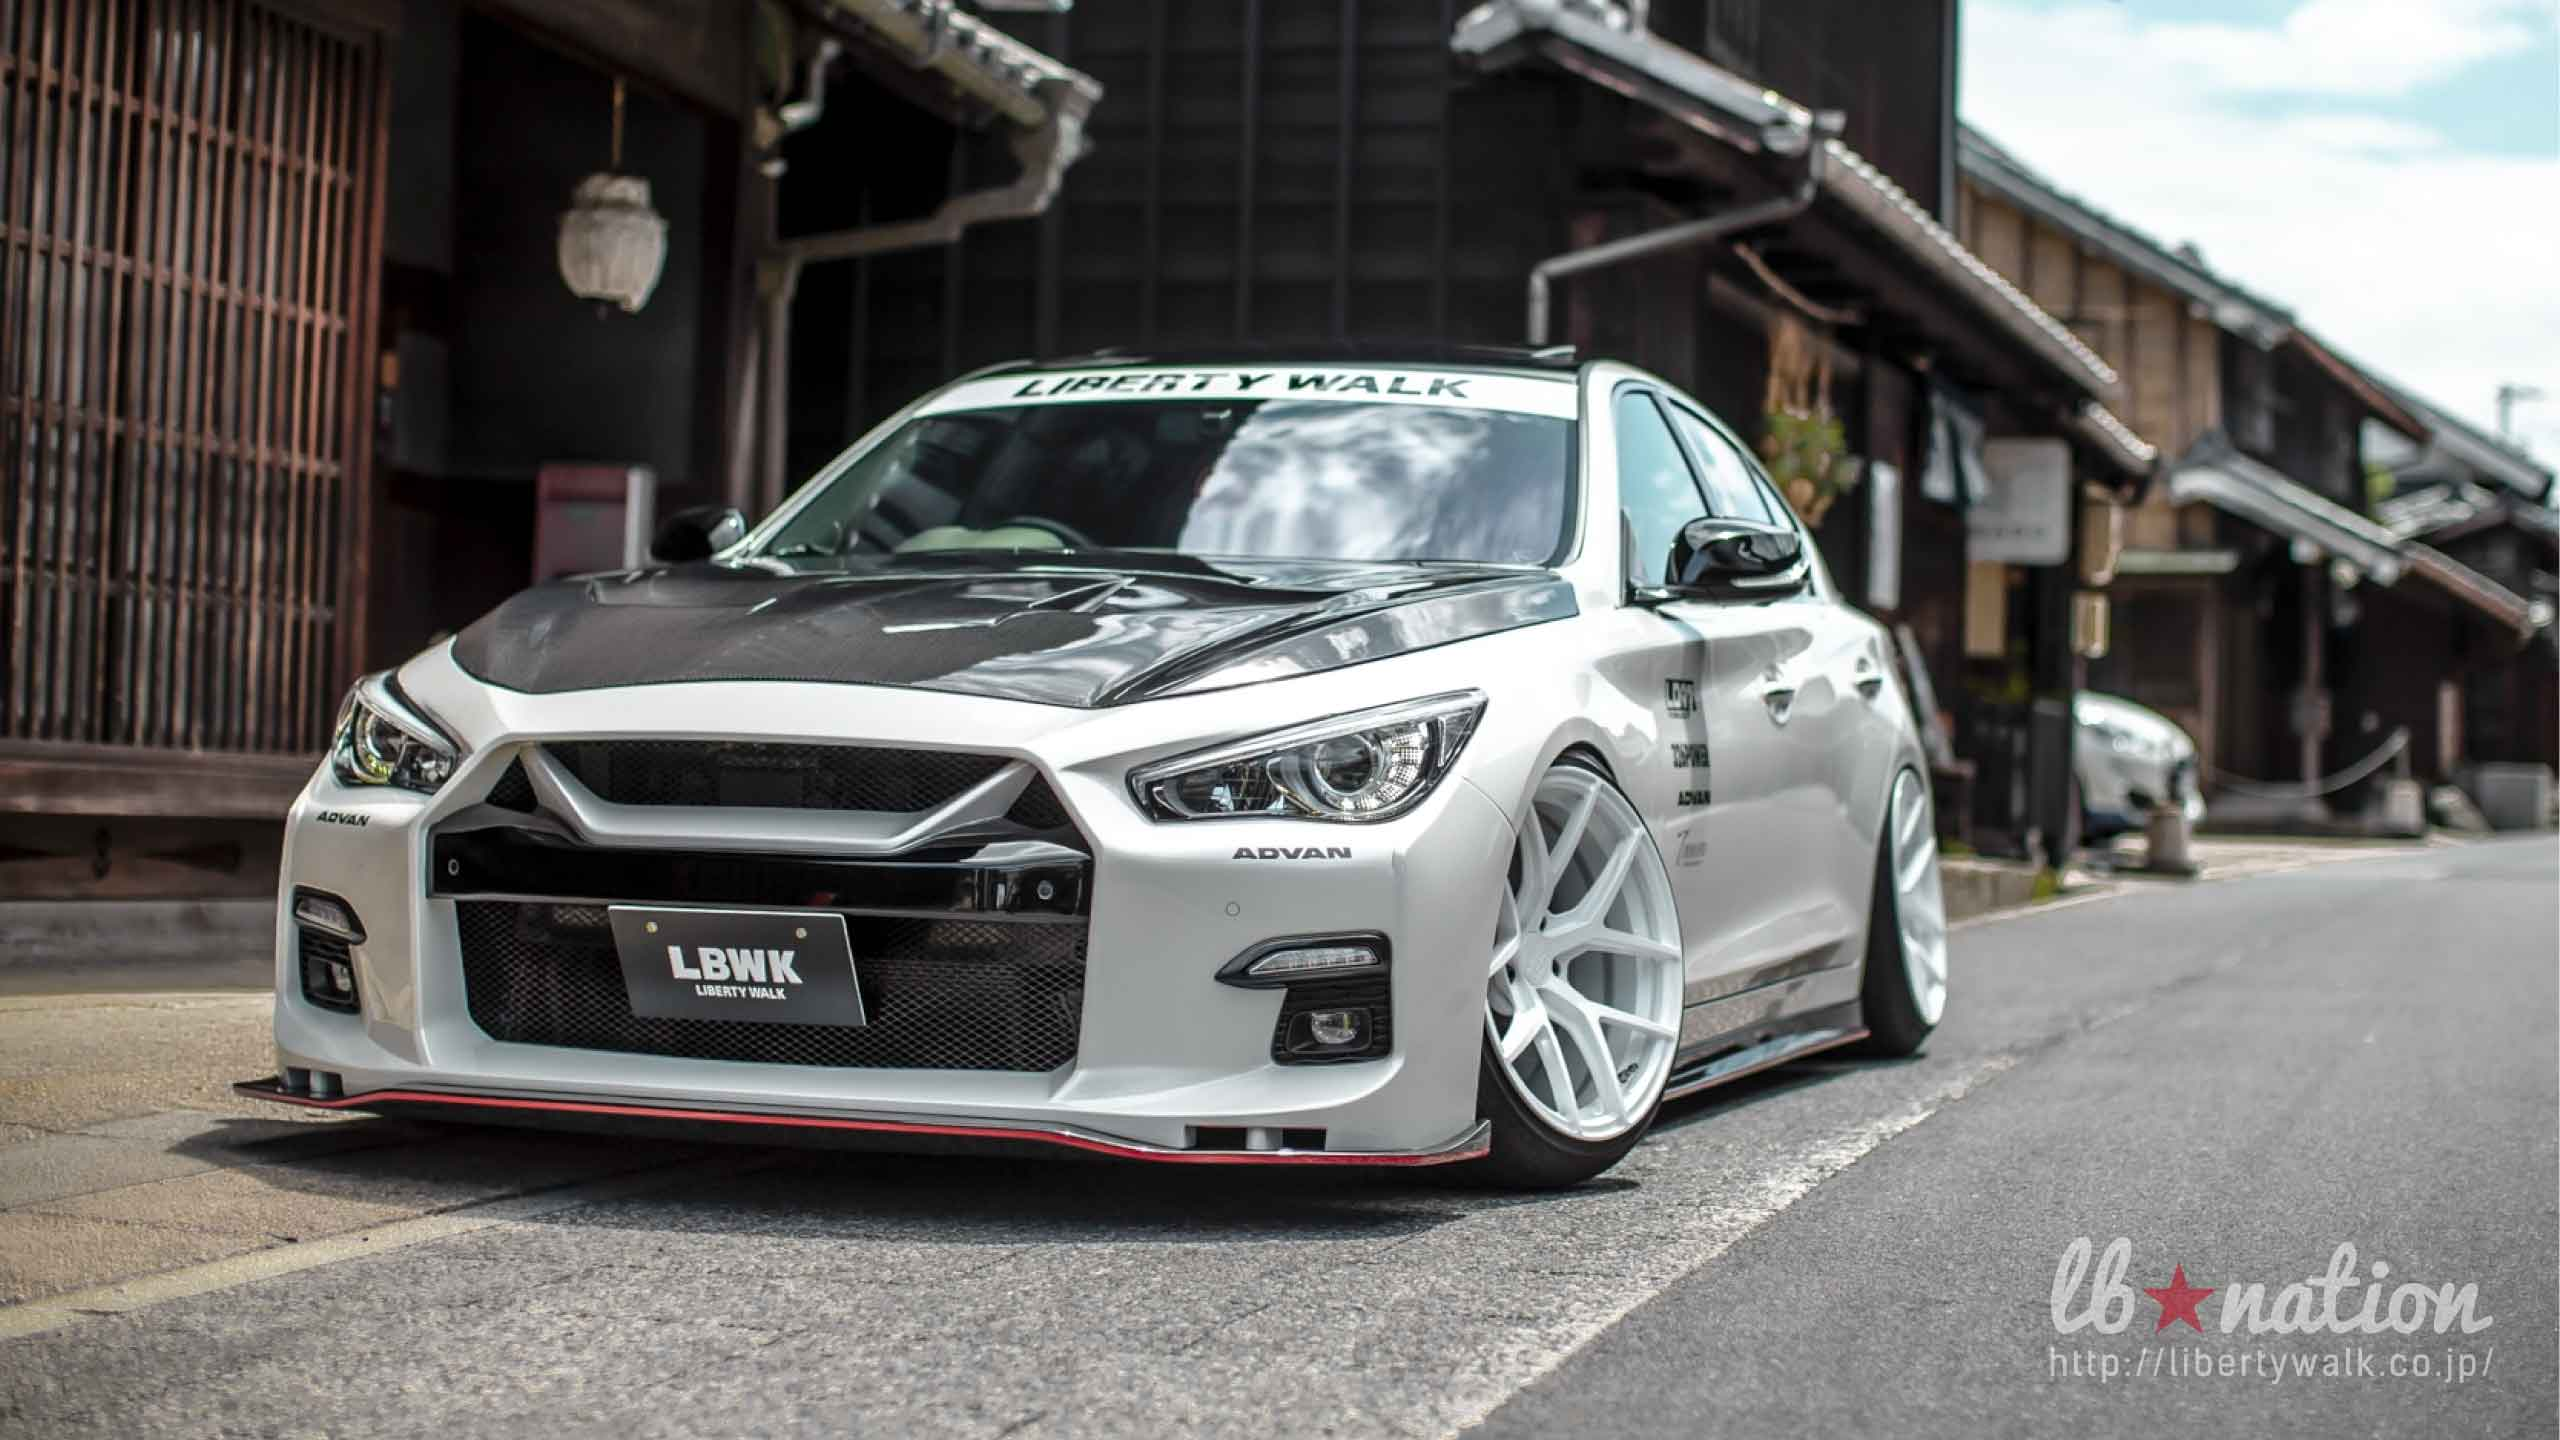 V37_00 lb★nation  NISSAN V37 SKYLINE / INFINITI Q50